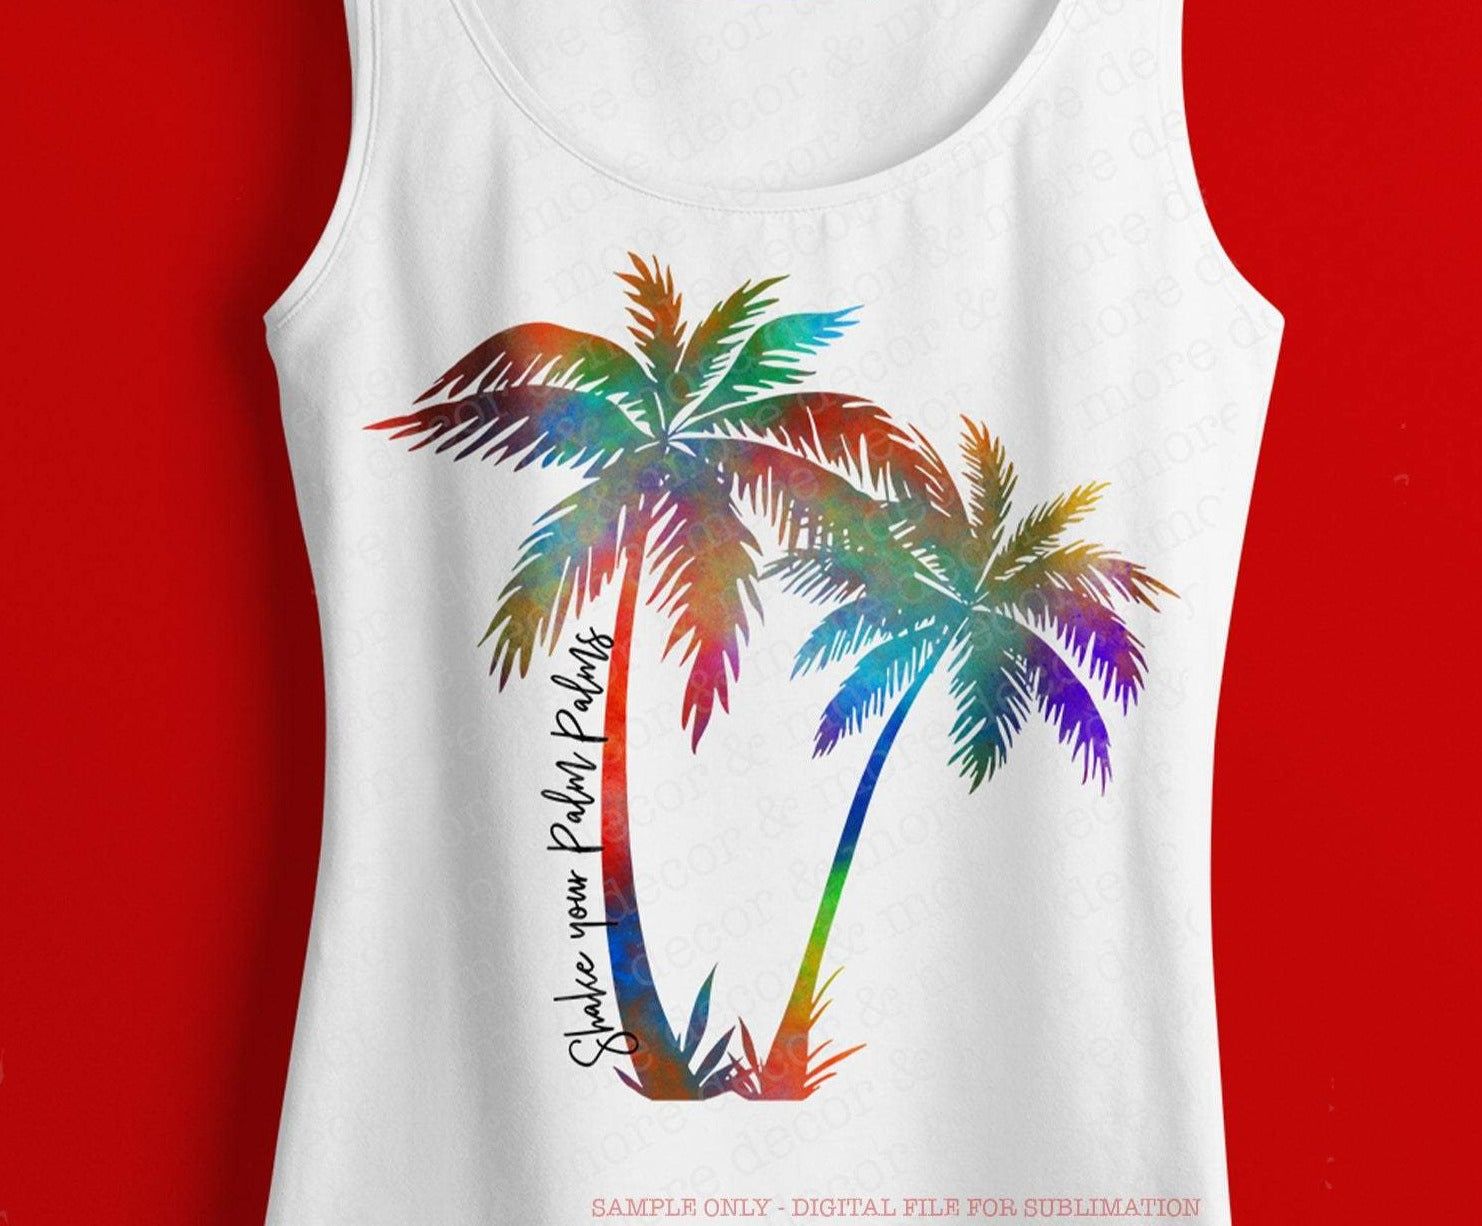 Shake Your Palm Palms, DIGITAL SUBLIMATION DOWNLOAD, Sublimation File for Beach Trip Shirt, Vacation Shirt png for Sublimation, Summer png